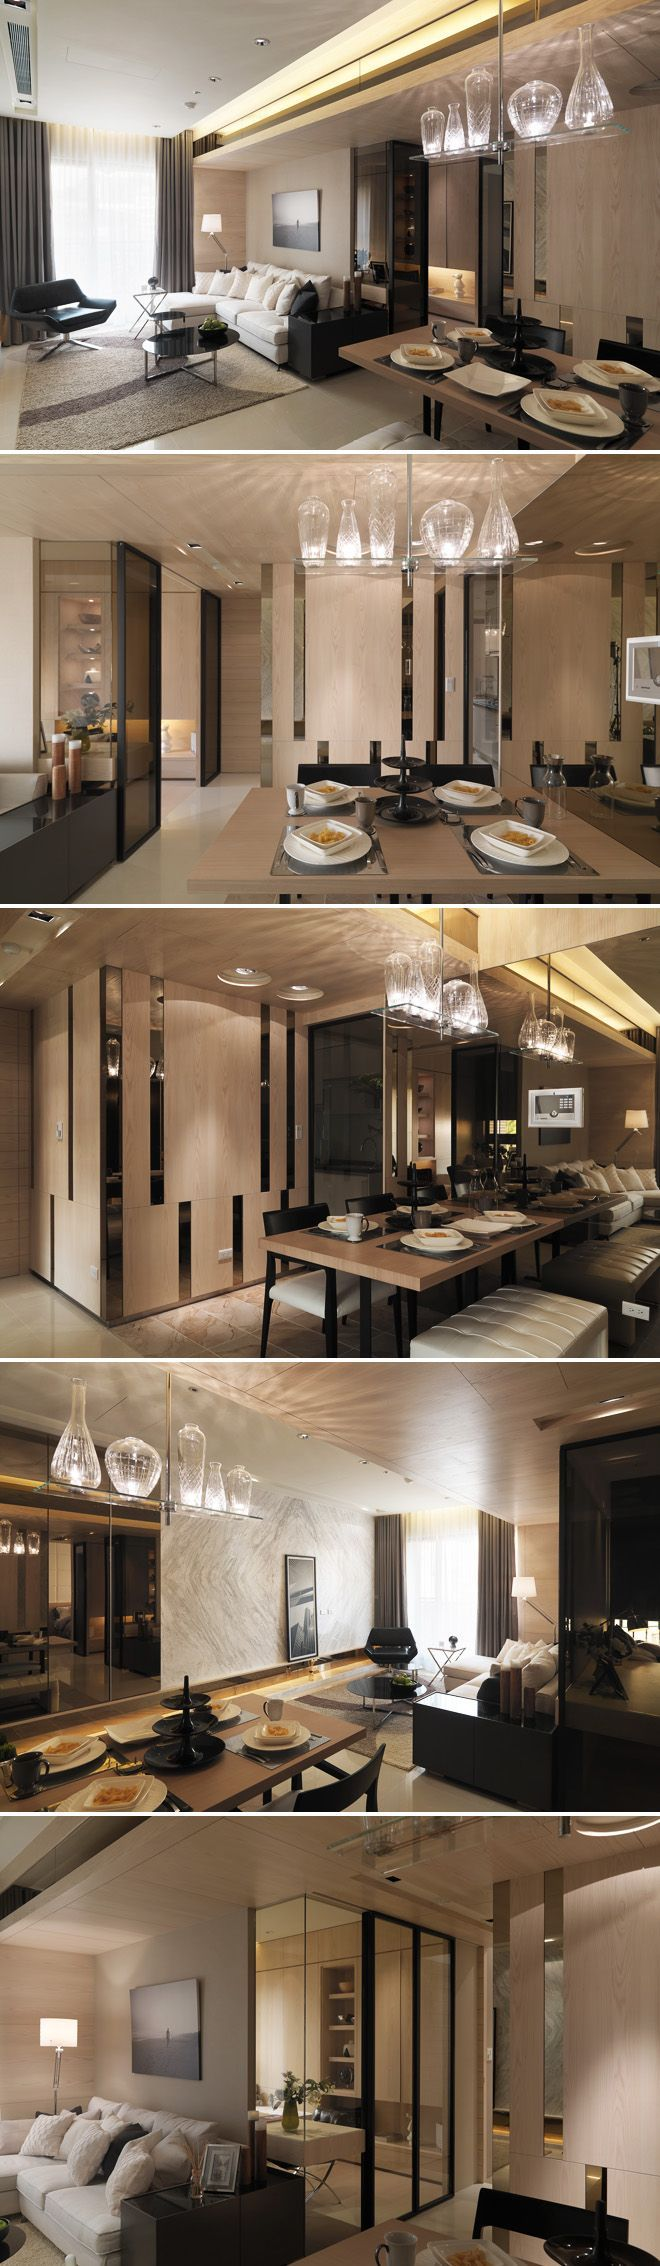 Contemporary Design + Architecture Interior by Fantasia interior| LBV ♥✤ | KeepSmiling | BeStayElegant